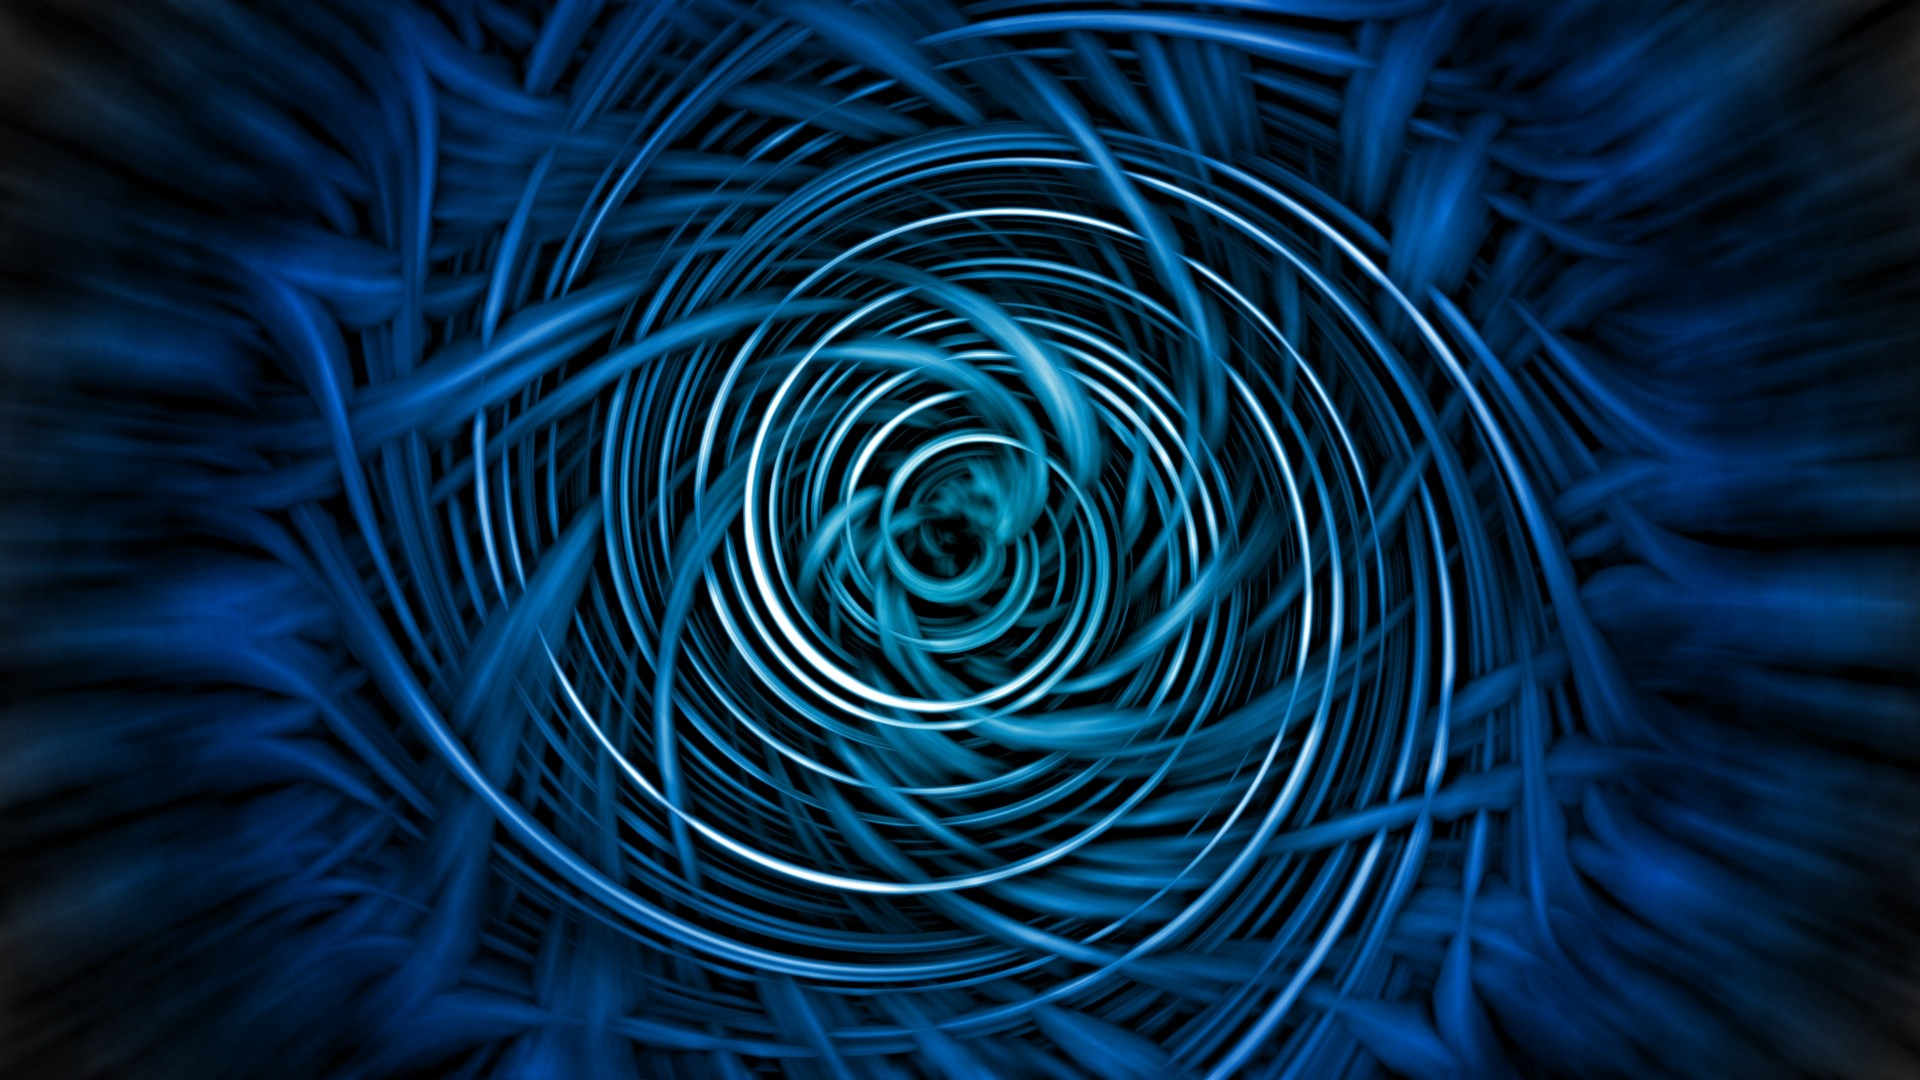 blue spiral desktop wallpaper 60461